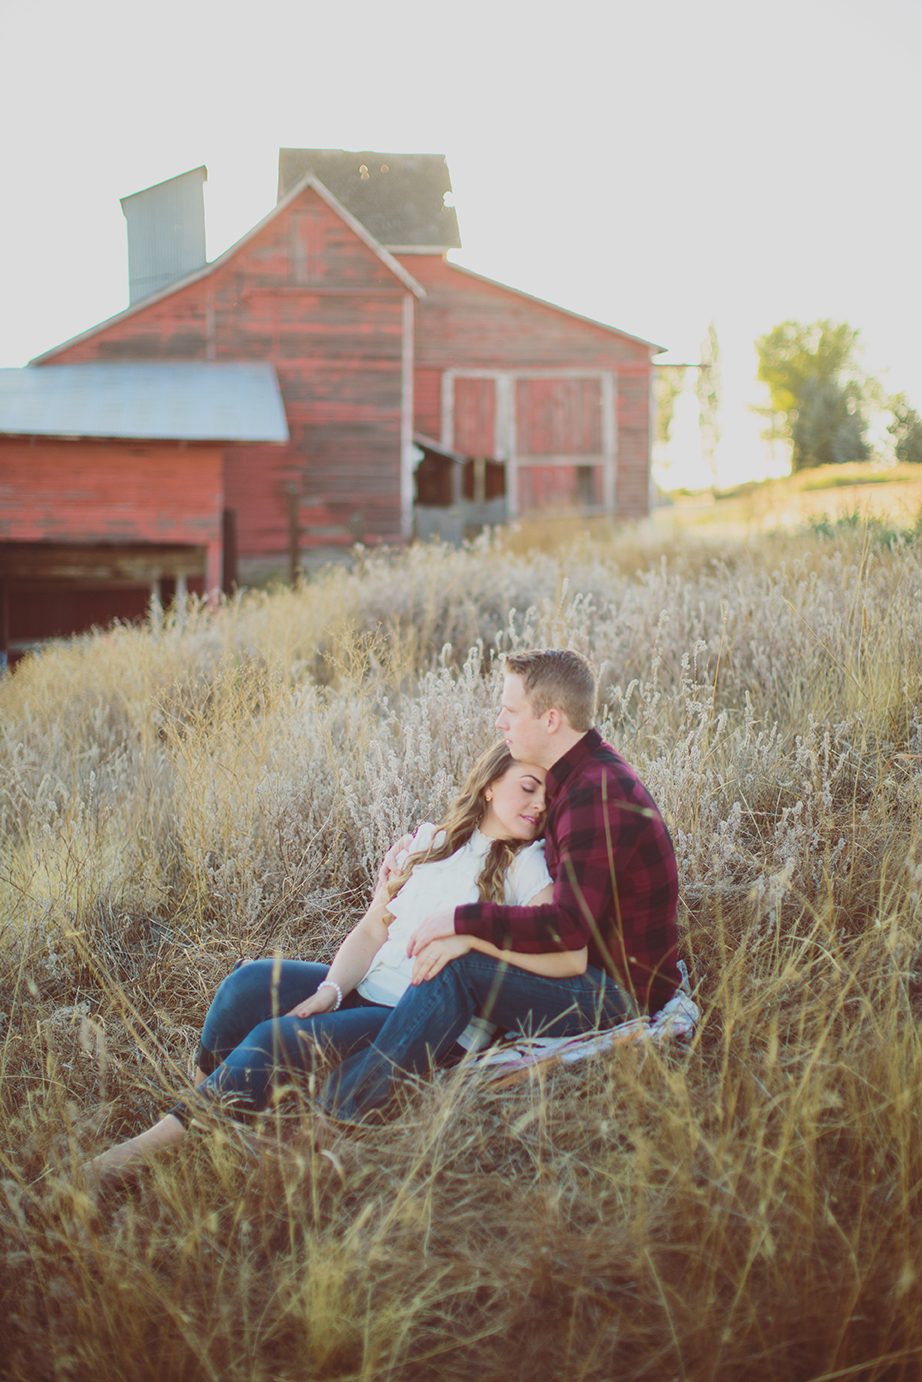 //ENGAGEMENT// VALERIE & JAKE in the country  KATE JENNINGS PHOTOGRAPHY